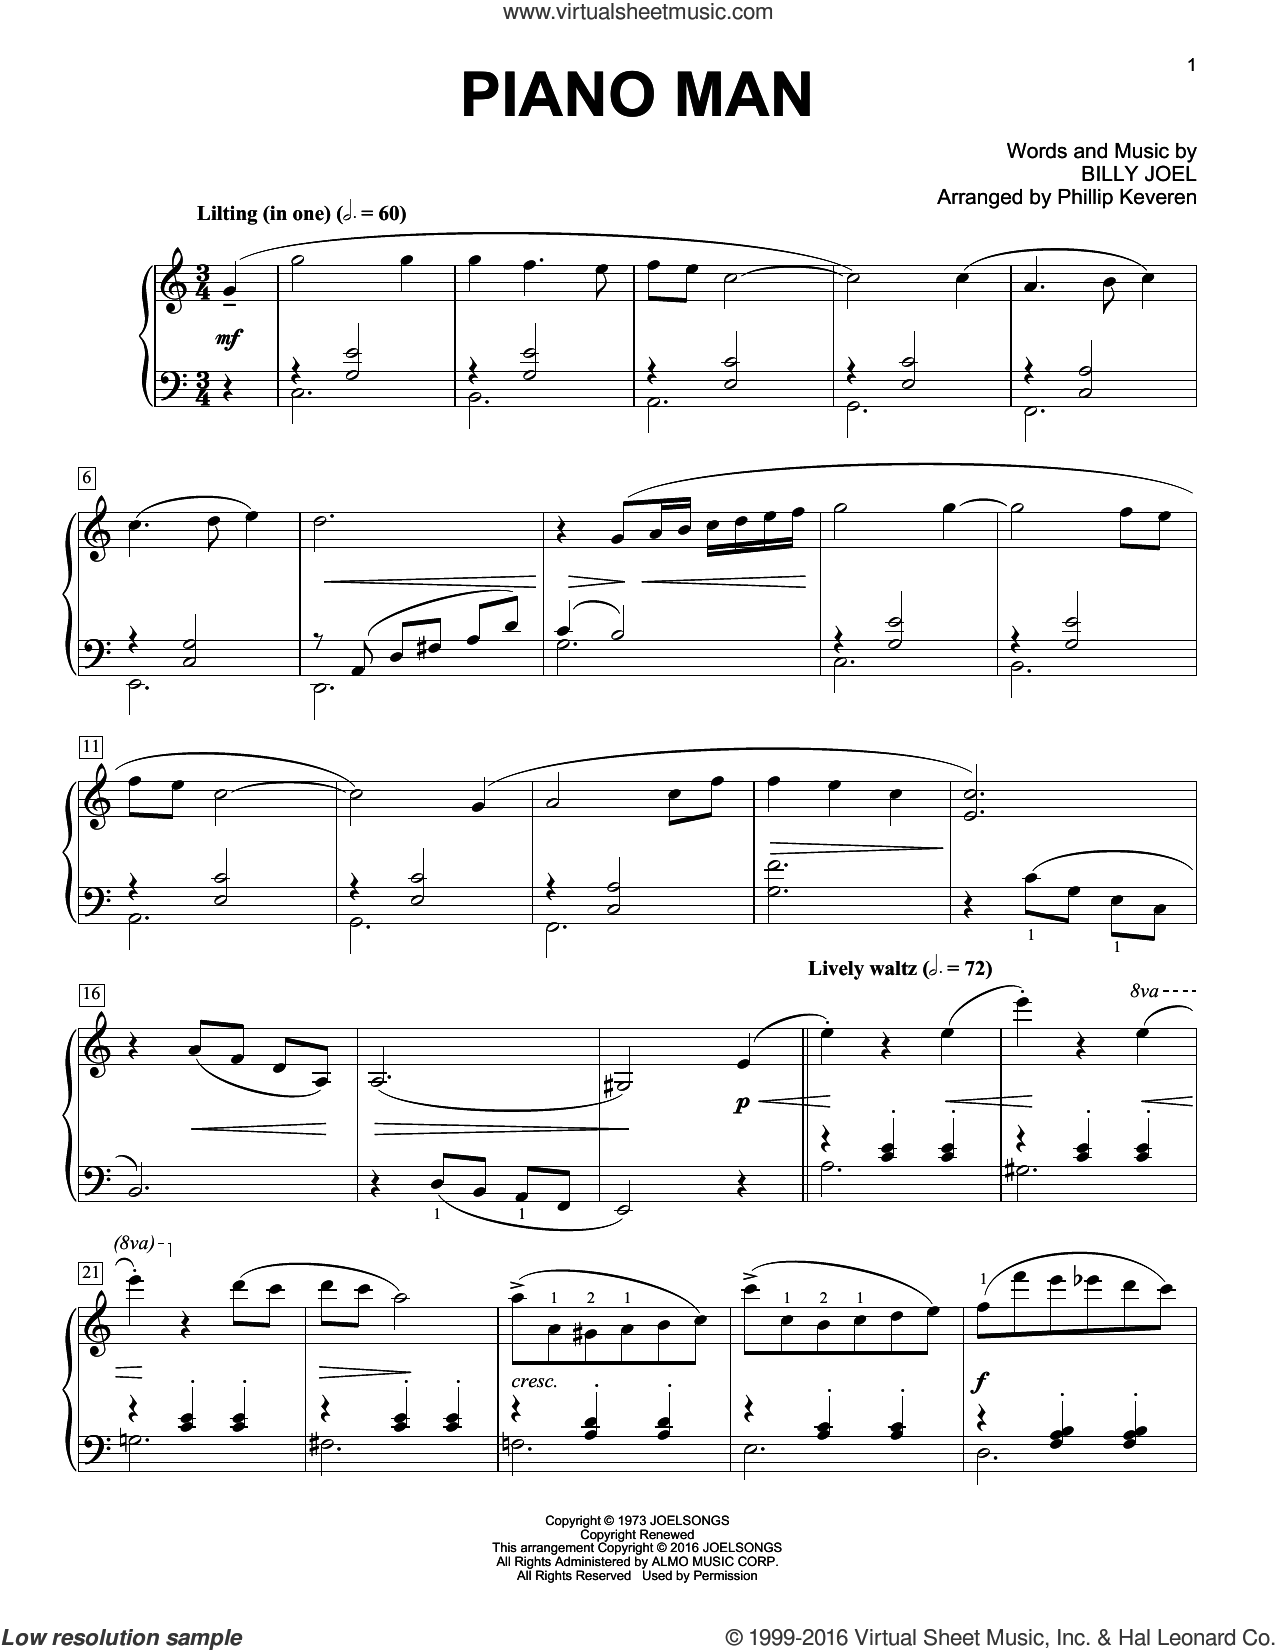 Piano Man [Classical version] (arr. Phillip Keveren) sheet music for piano solo by Billy Joel, Phillip Keveren and Billy Joel (Arr. Phillip Keveren), intermediate skill level